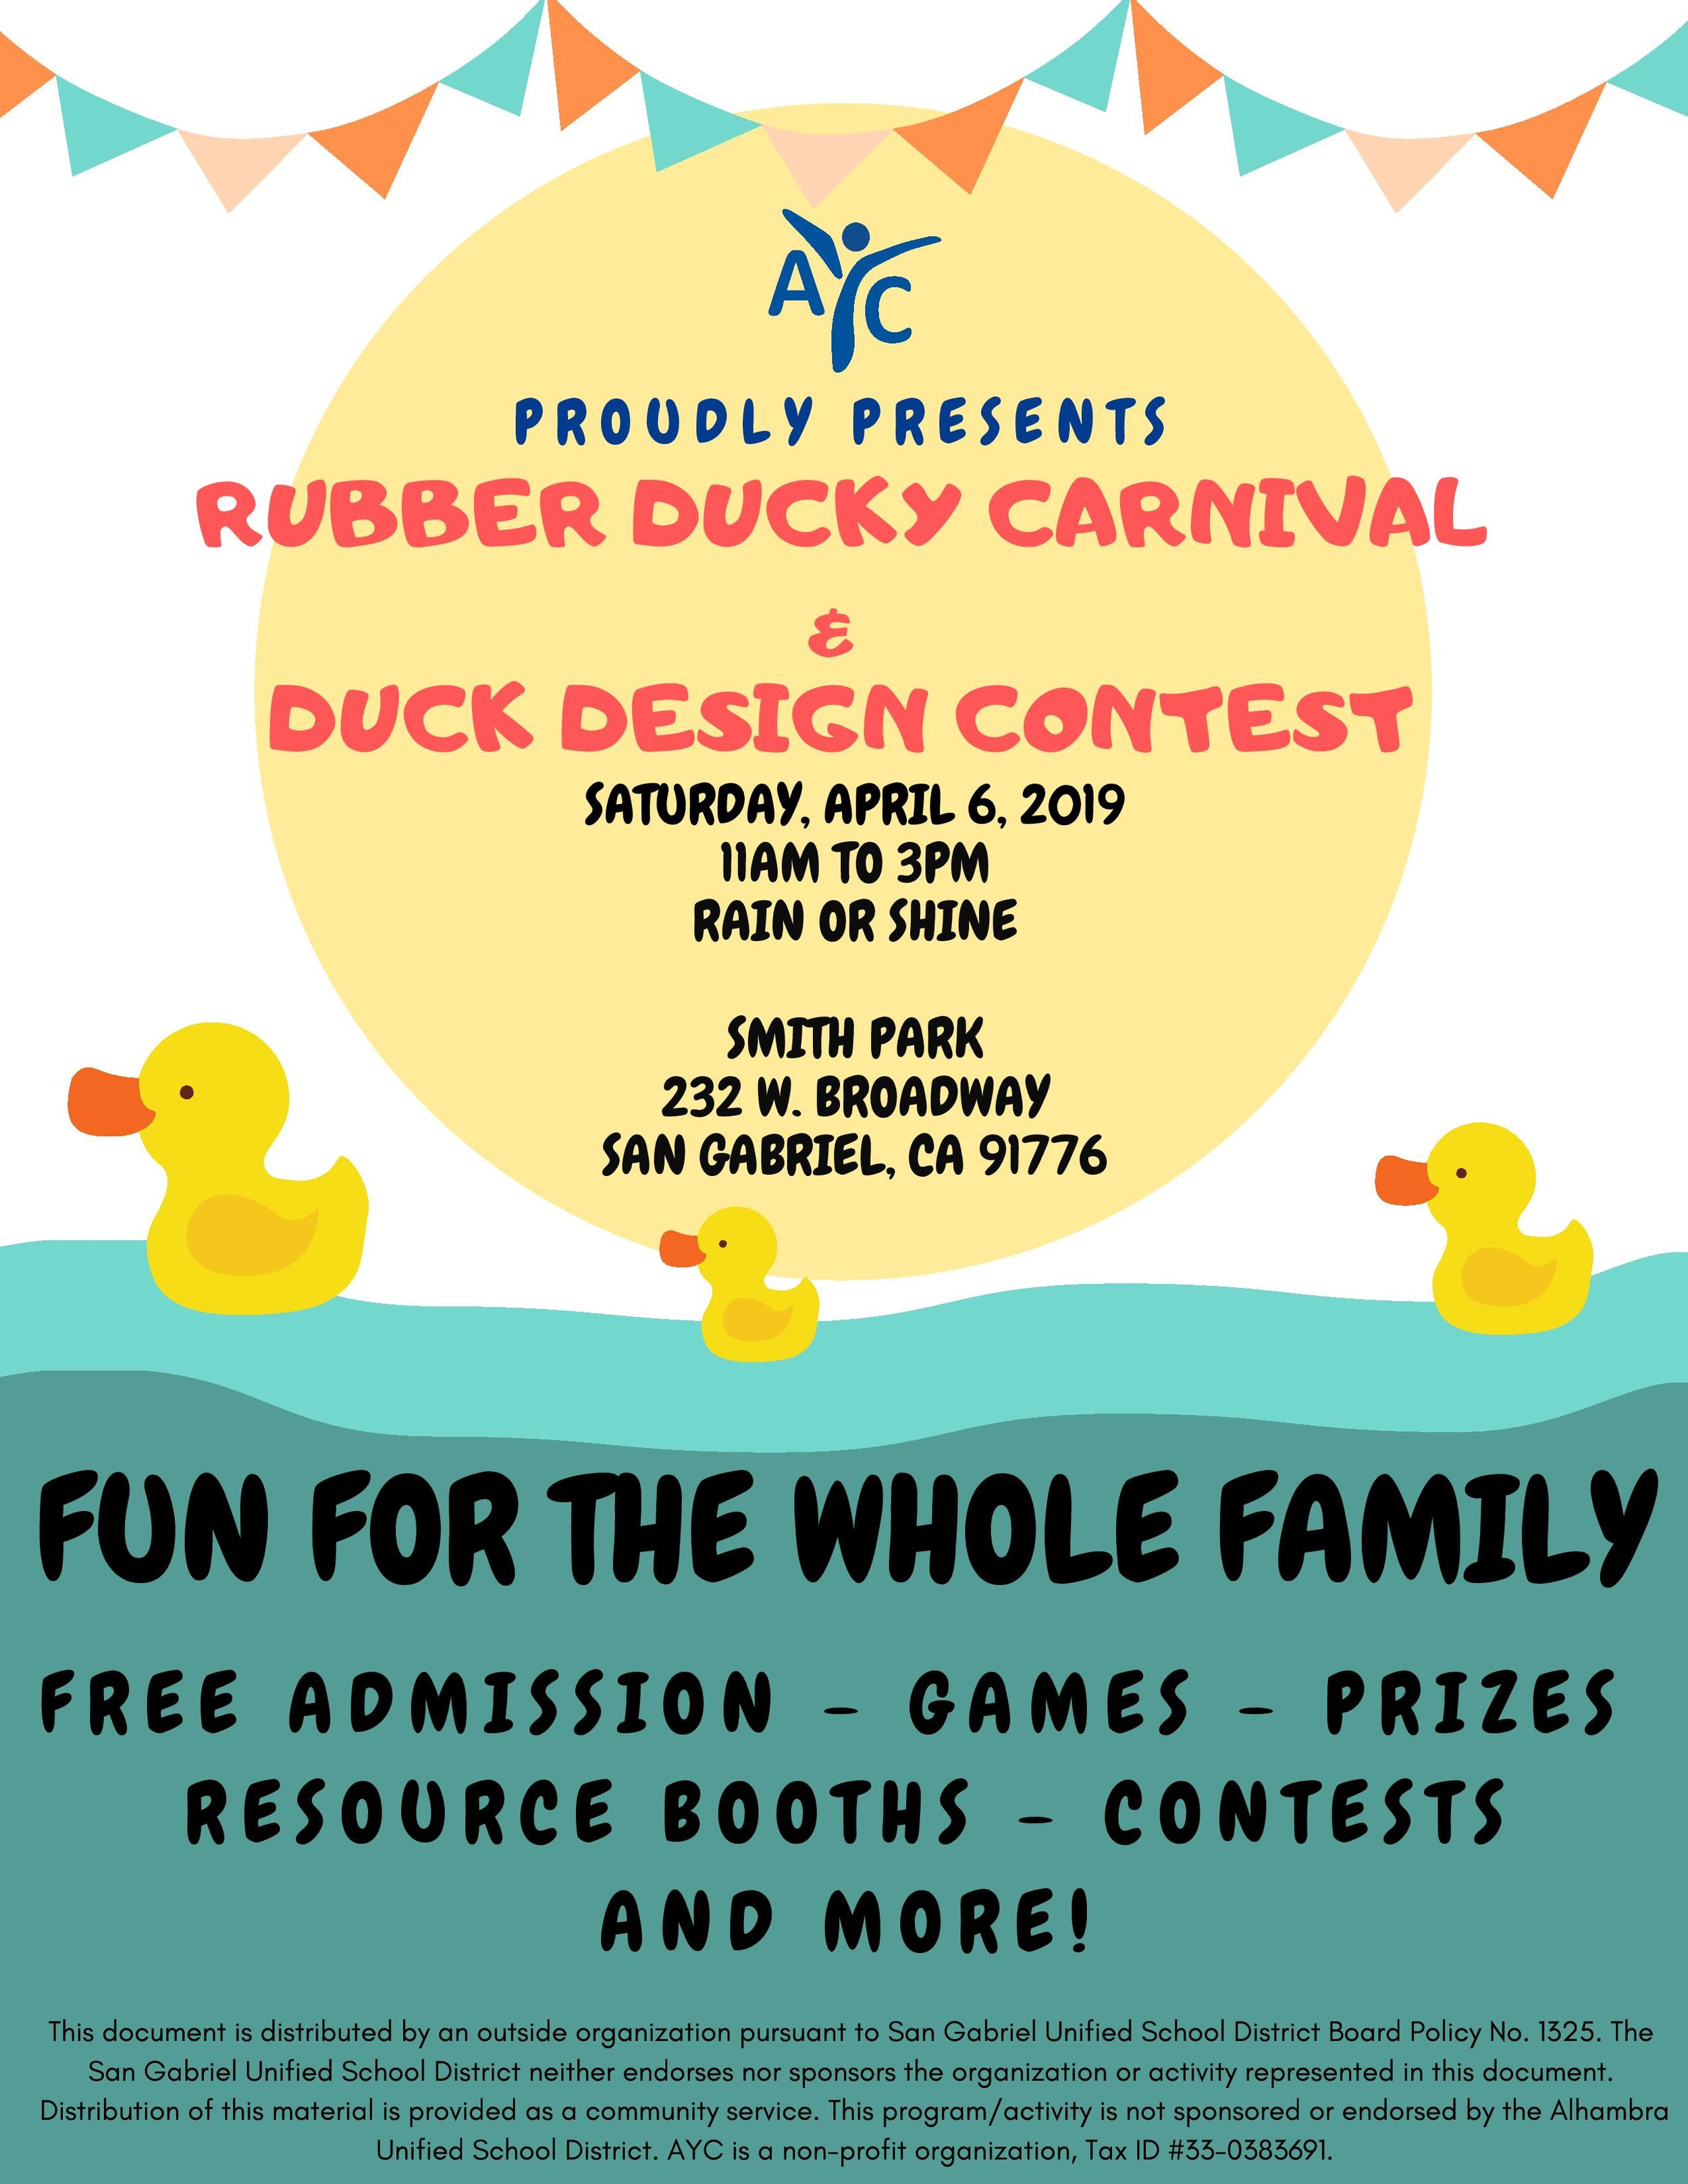 ayc rubber ducky carnival & duck design contest - April 6th, 2019